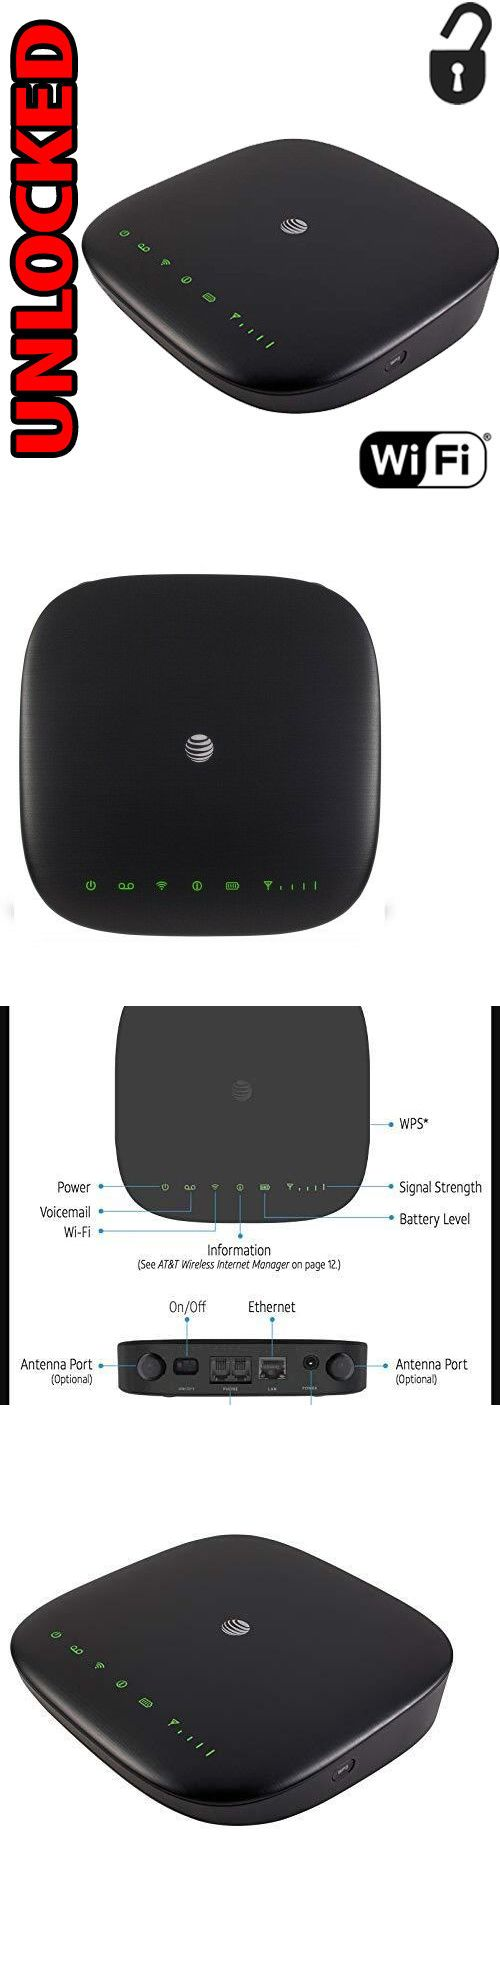 My Friends Told Me About You / Guide lte router usa